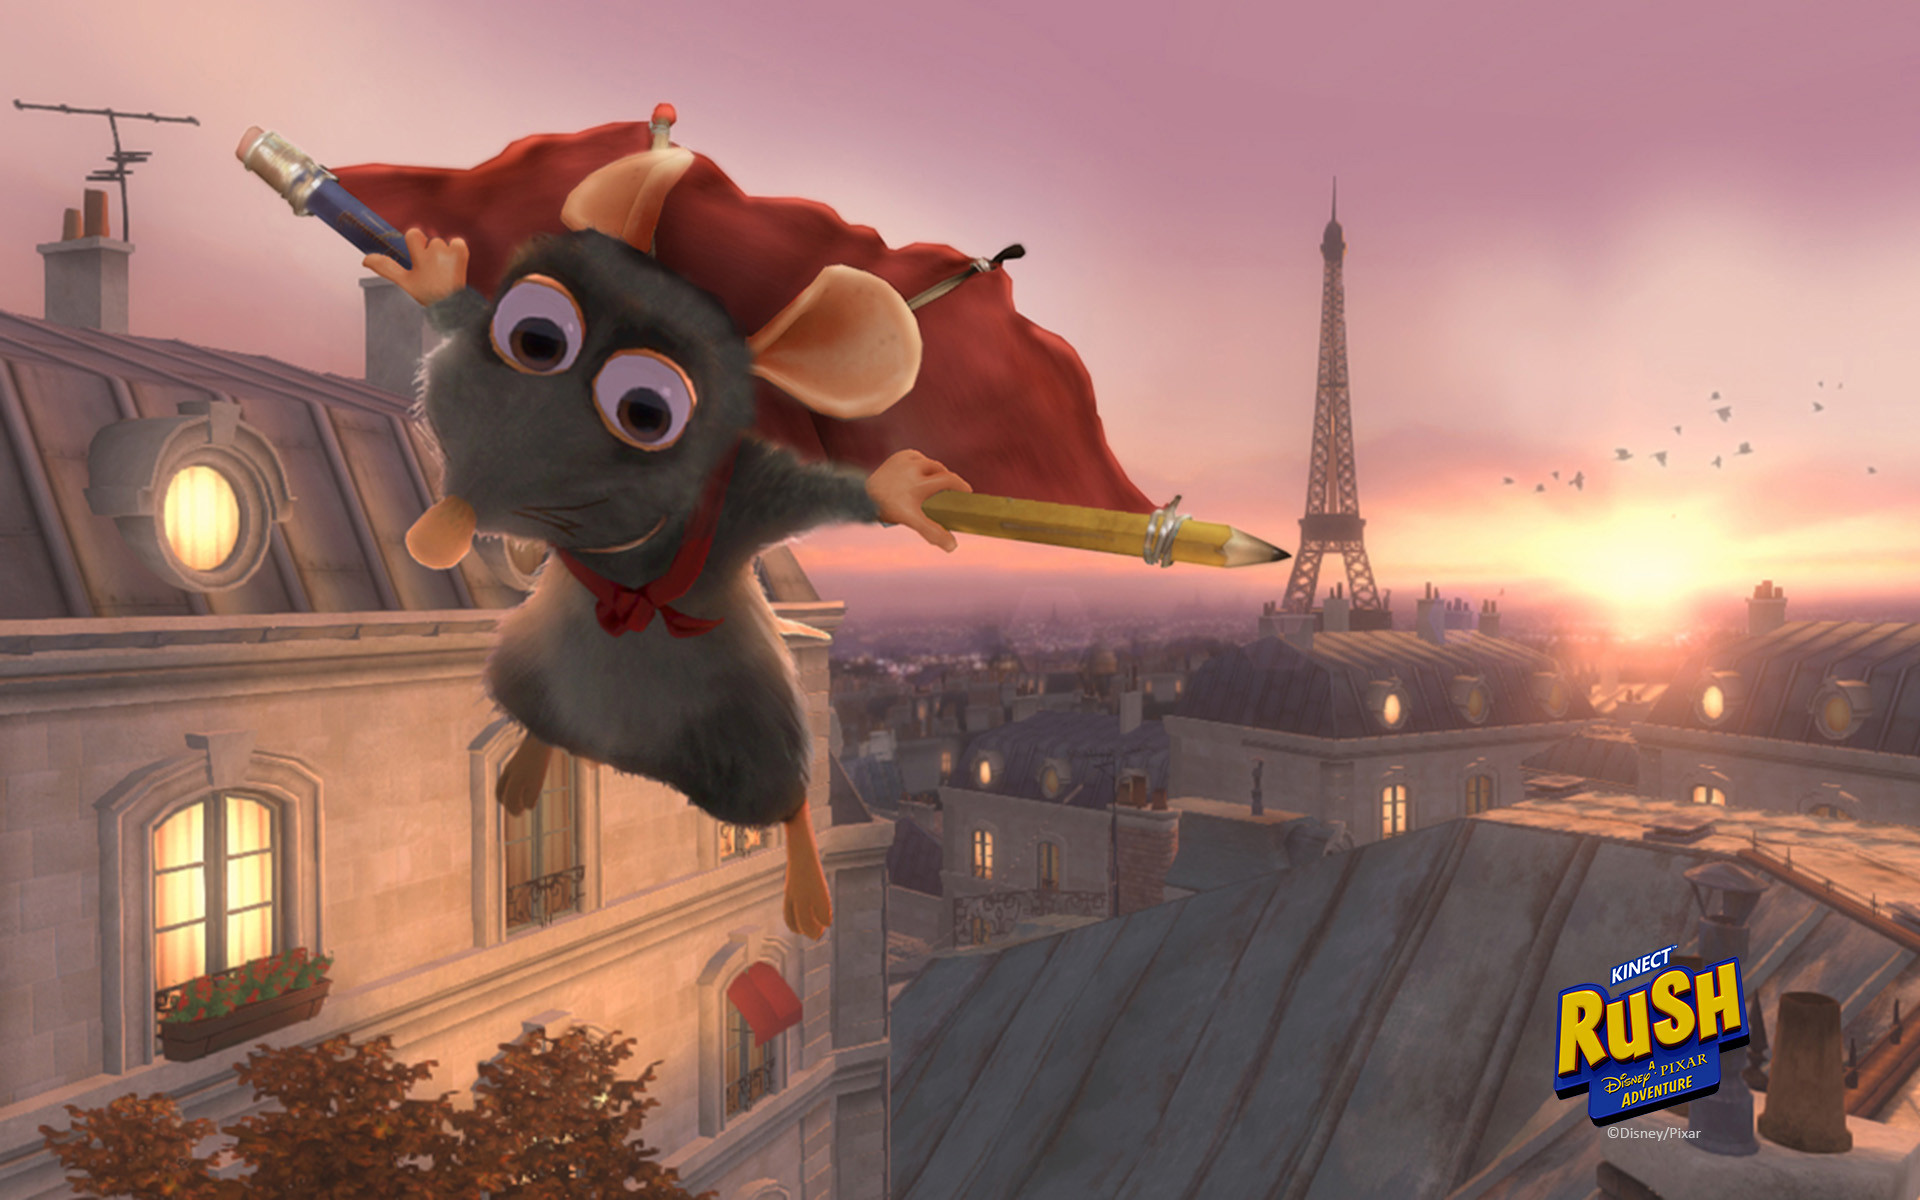 Eiffel Tower Full Hd Wallpaper Ratatouille Wallpapers 52 Images